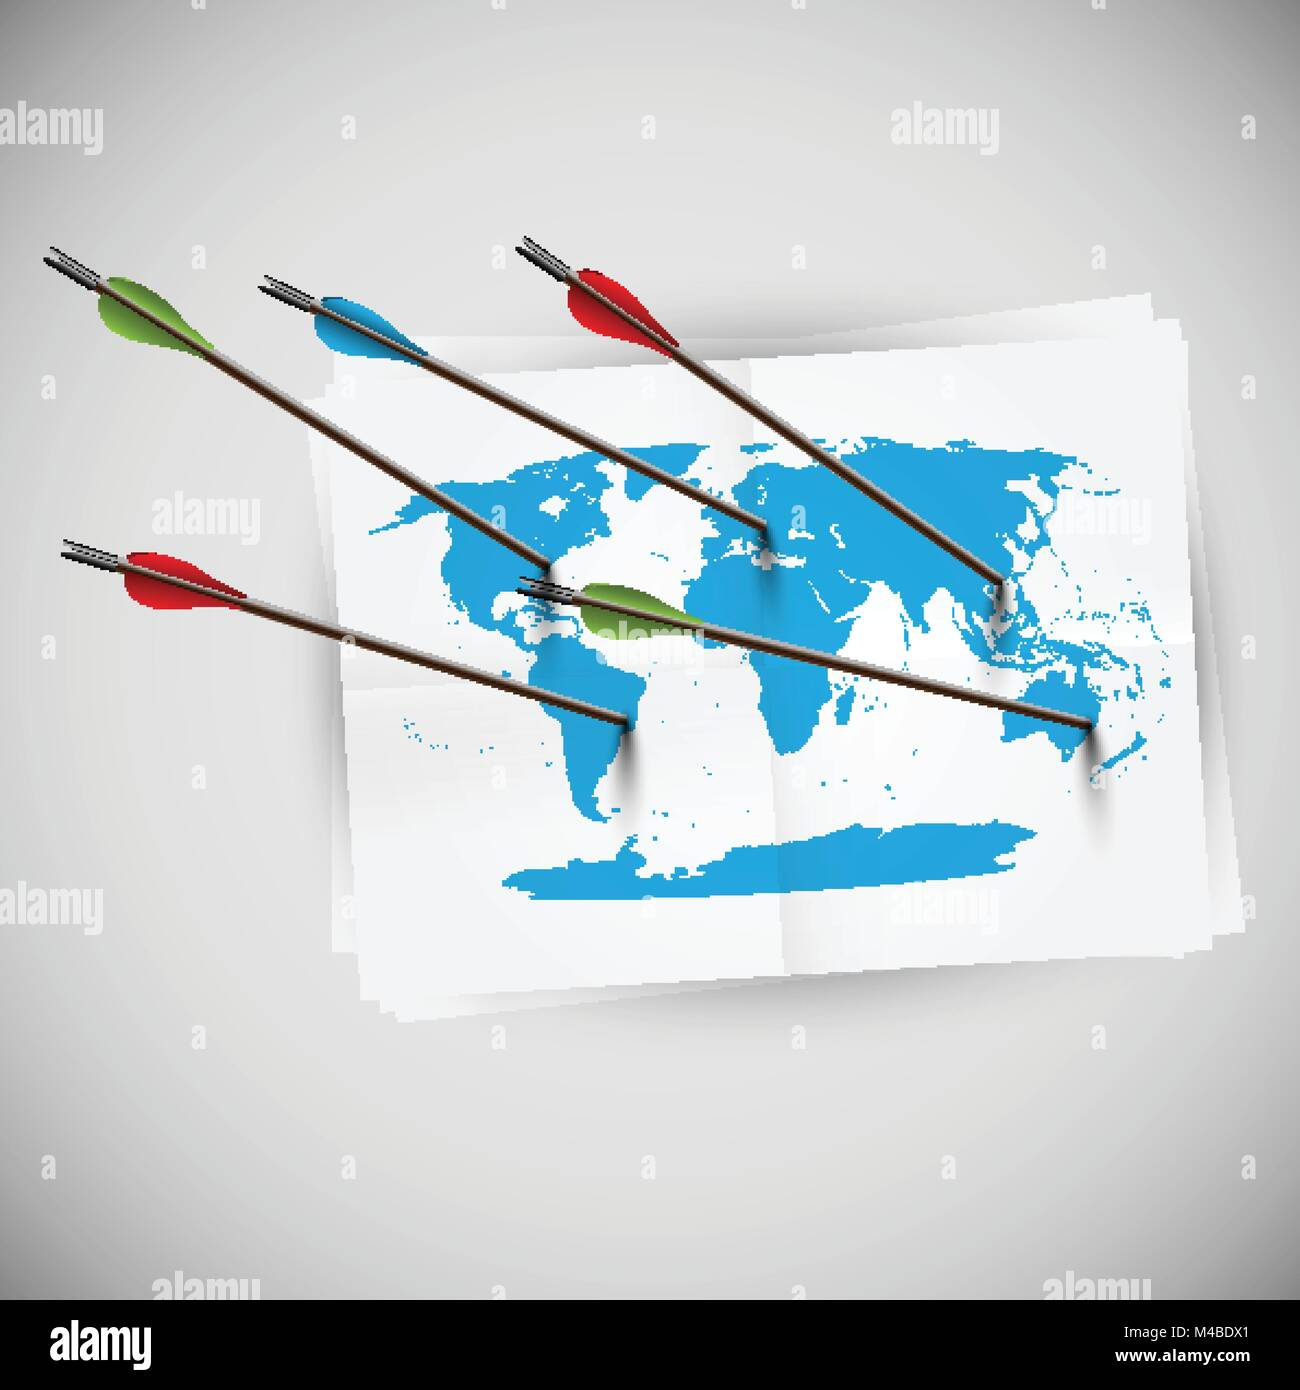 World map with arrows vector stock vector art illustration world map with arrows vector gumiabroncs Image collections